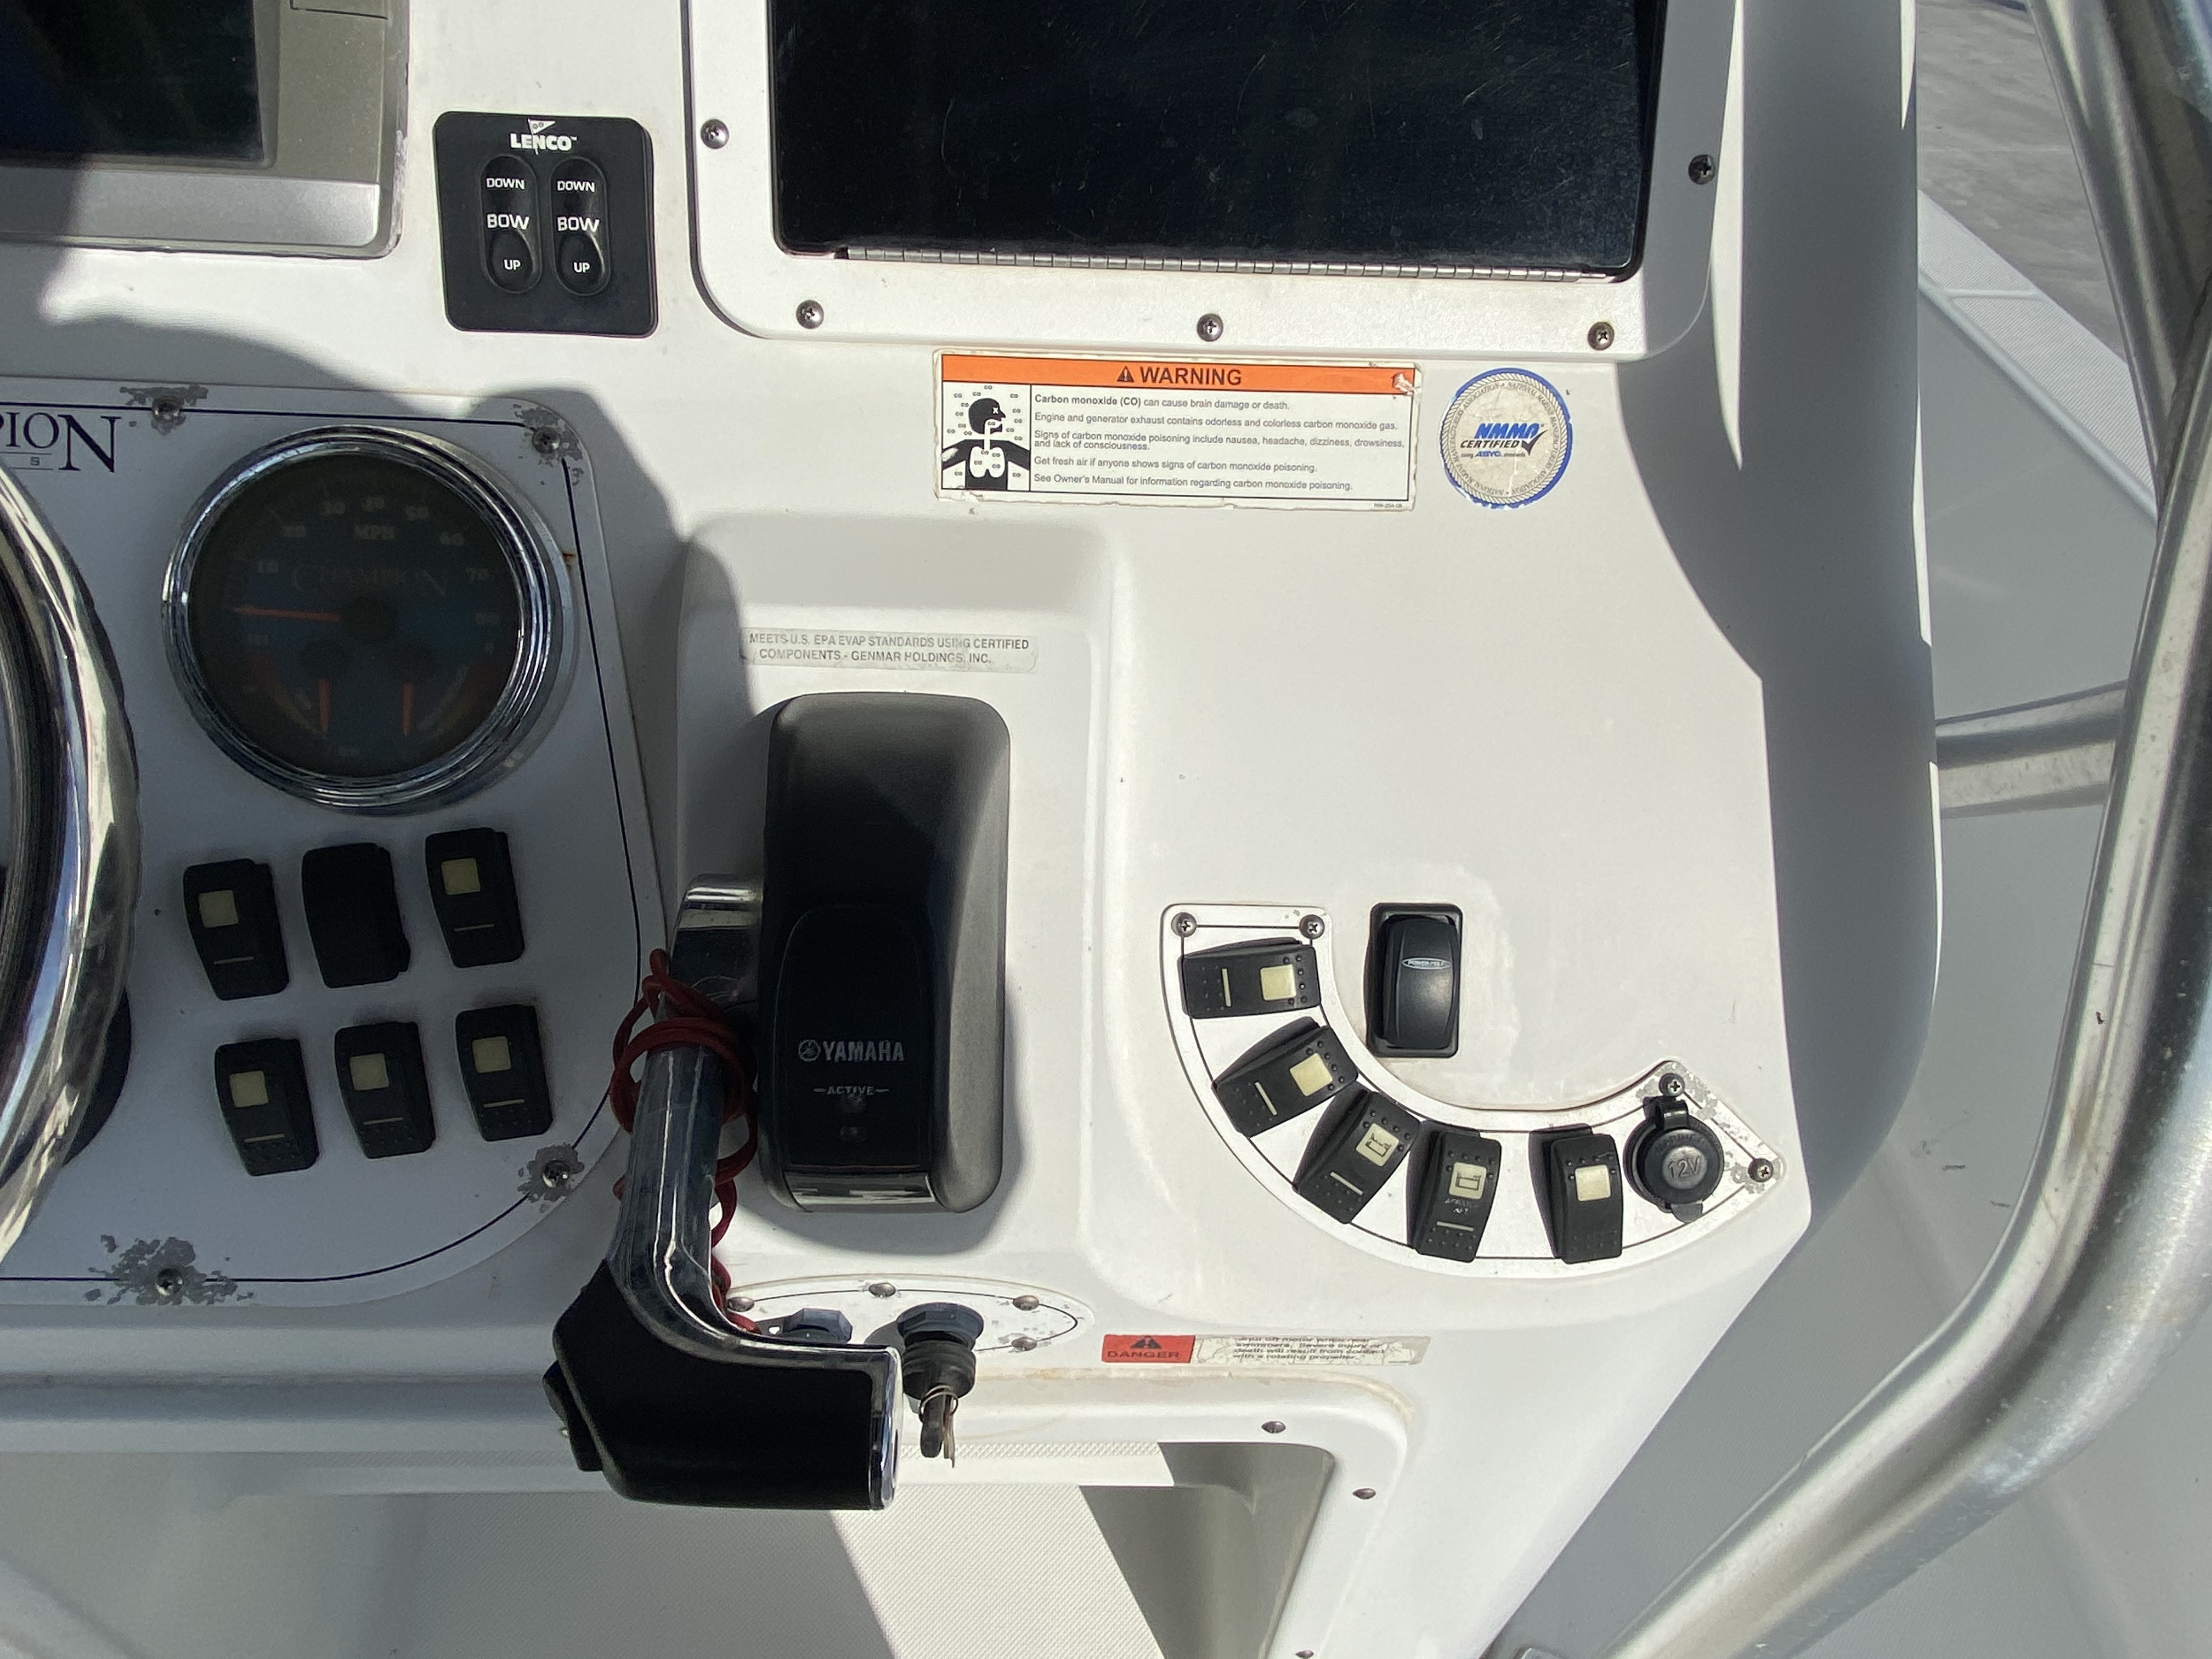 2010 Champion boat for sale, model of the boat is 25 BAY & Image # 6 of 25